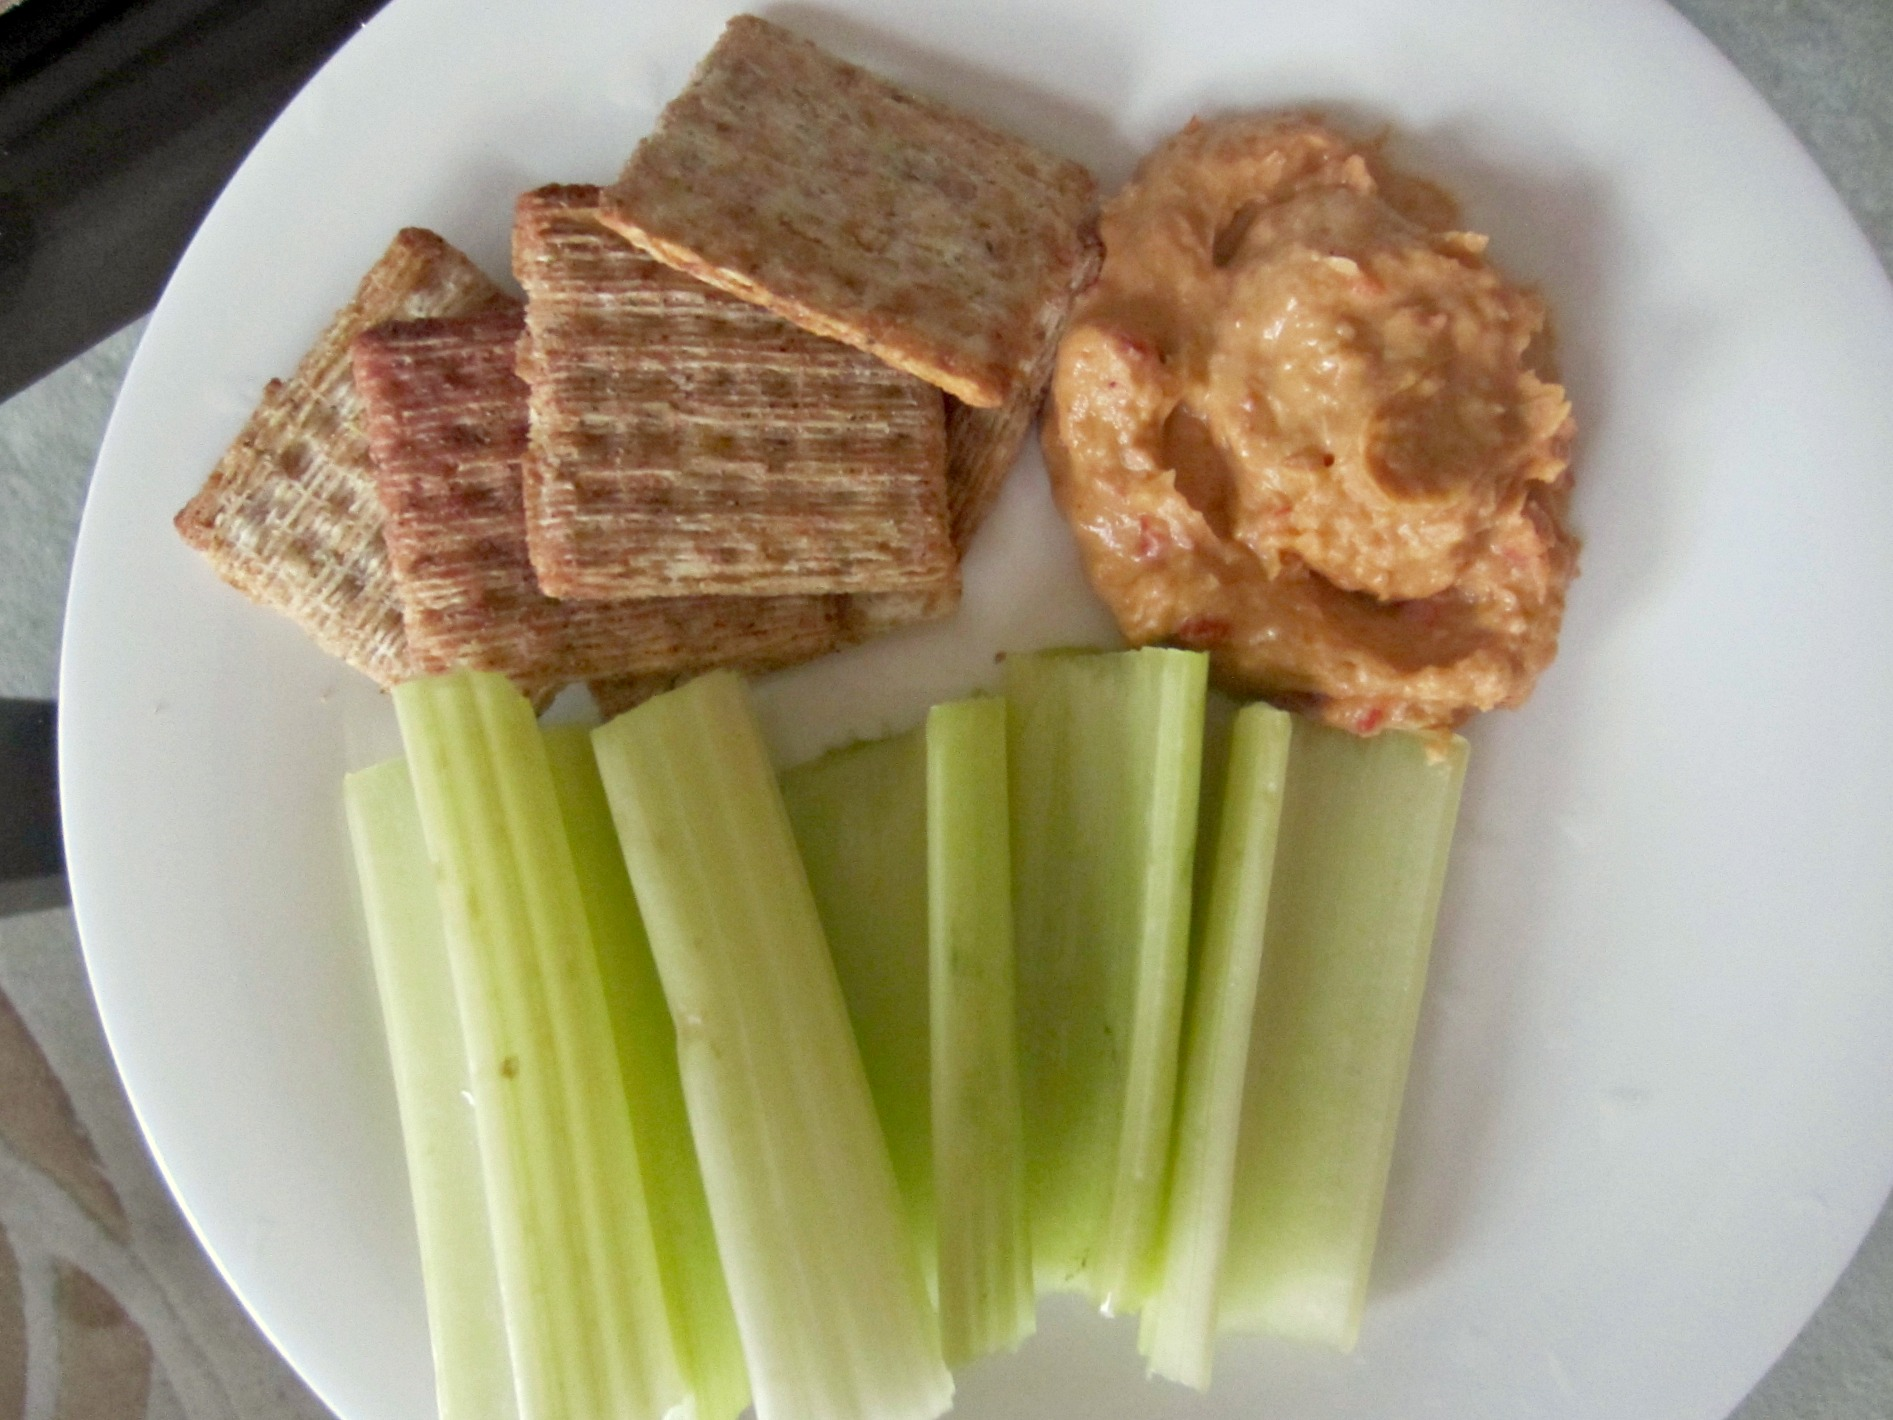 celery and crackers with hummus